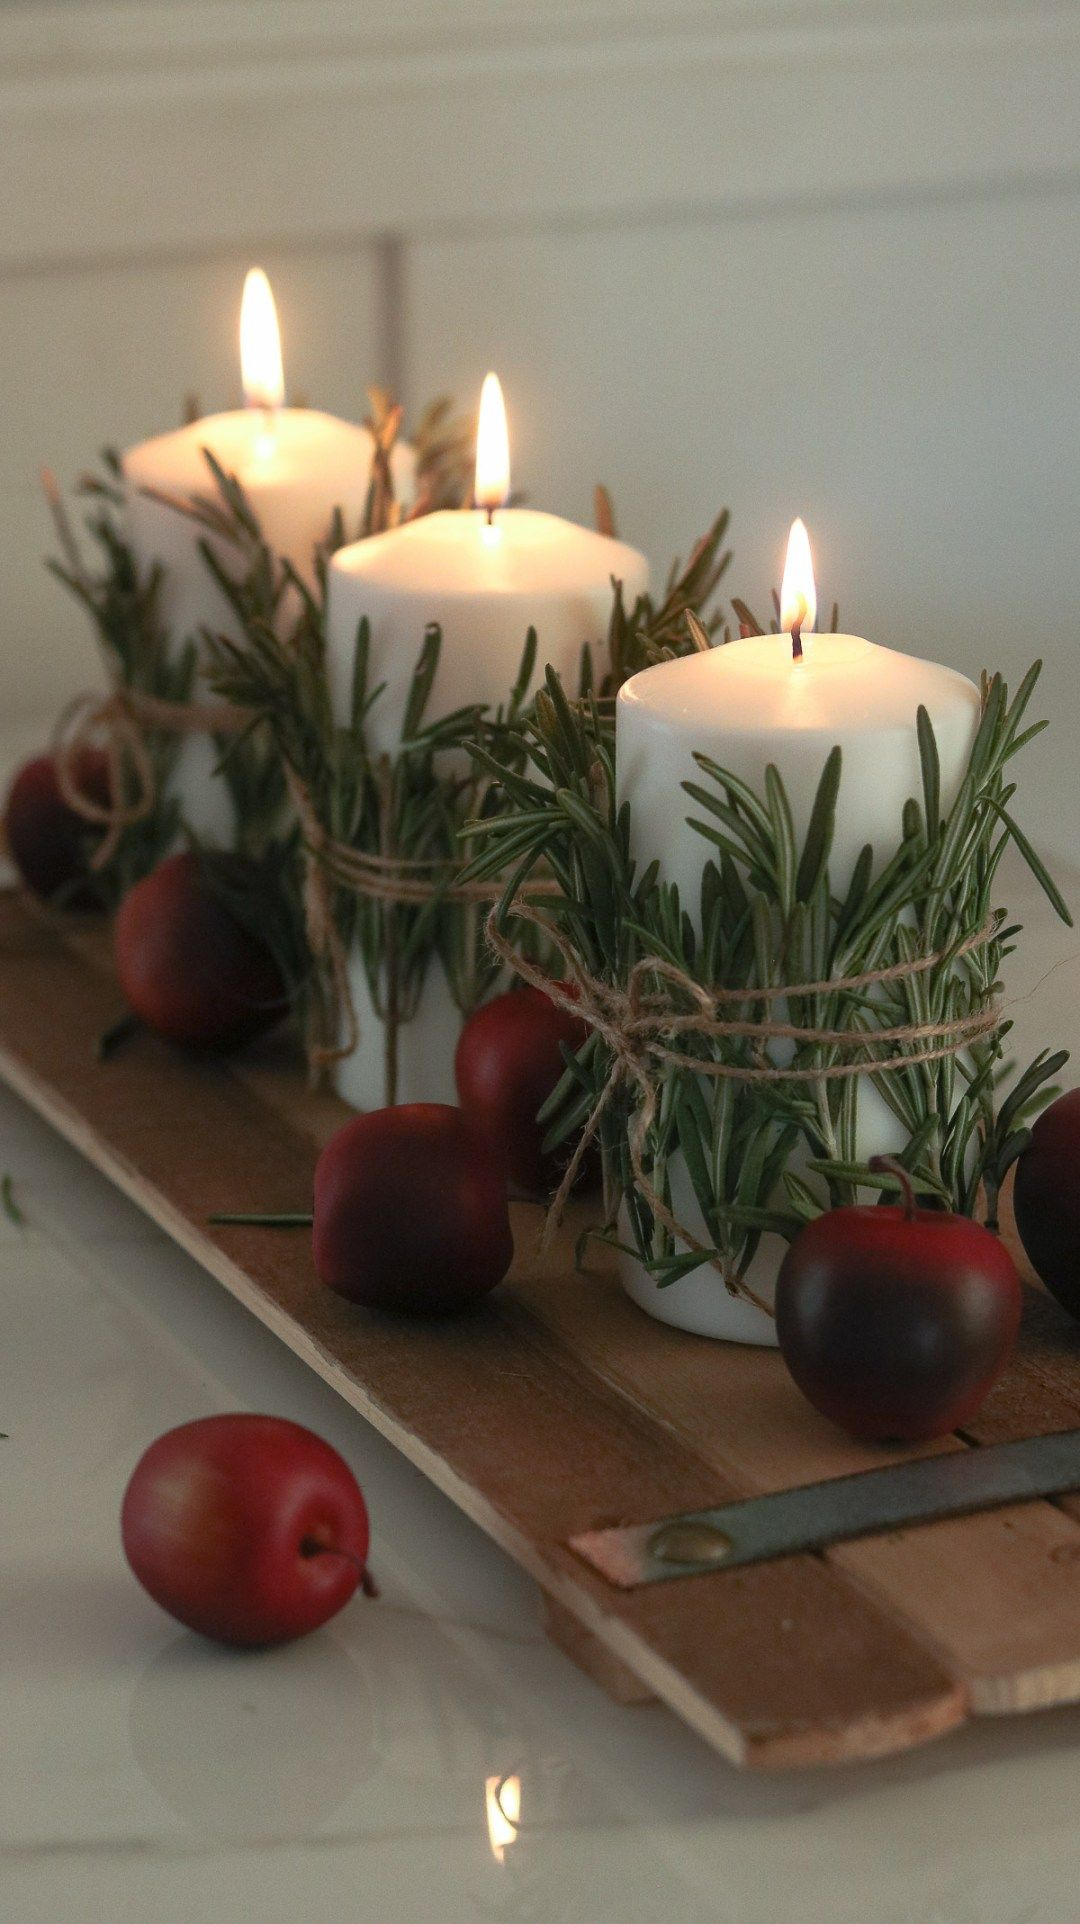 Diy Christmas Centerpieces That Bring Cheer And Joy To Your Home Christmas Candle Centerpiece Holiday Table Decorations Diy Christmas Table